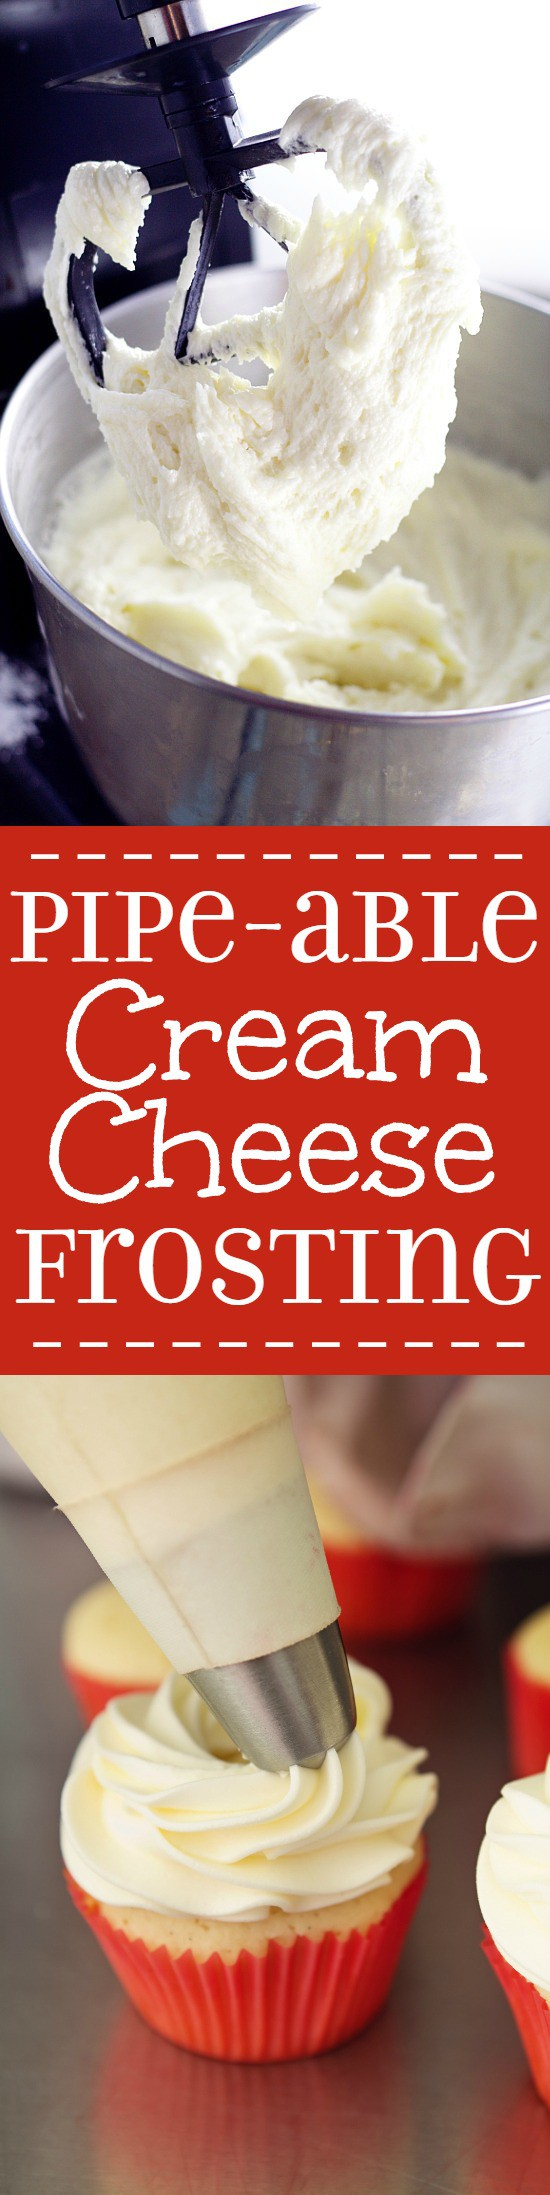 Pipeable Cream Cheese Frosting Recipe. The perfect Pipeable Cream ...